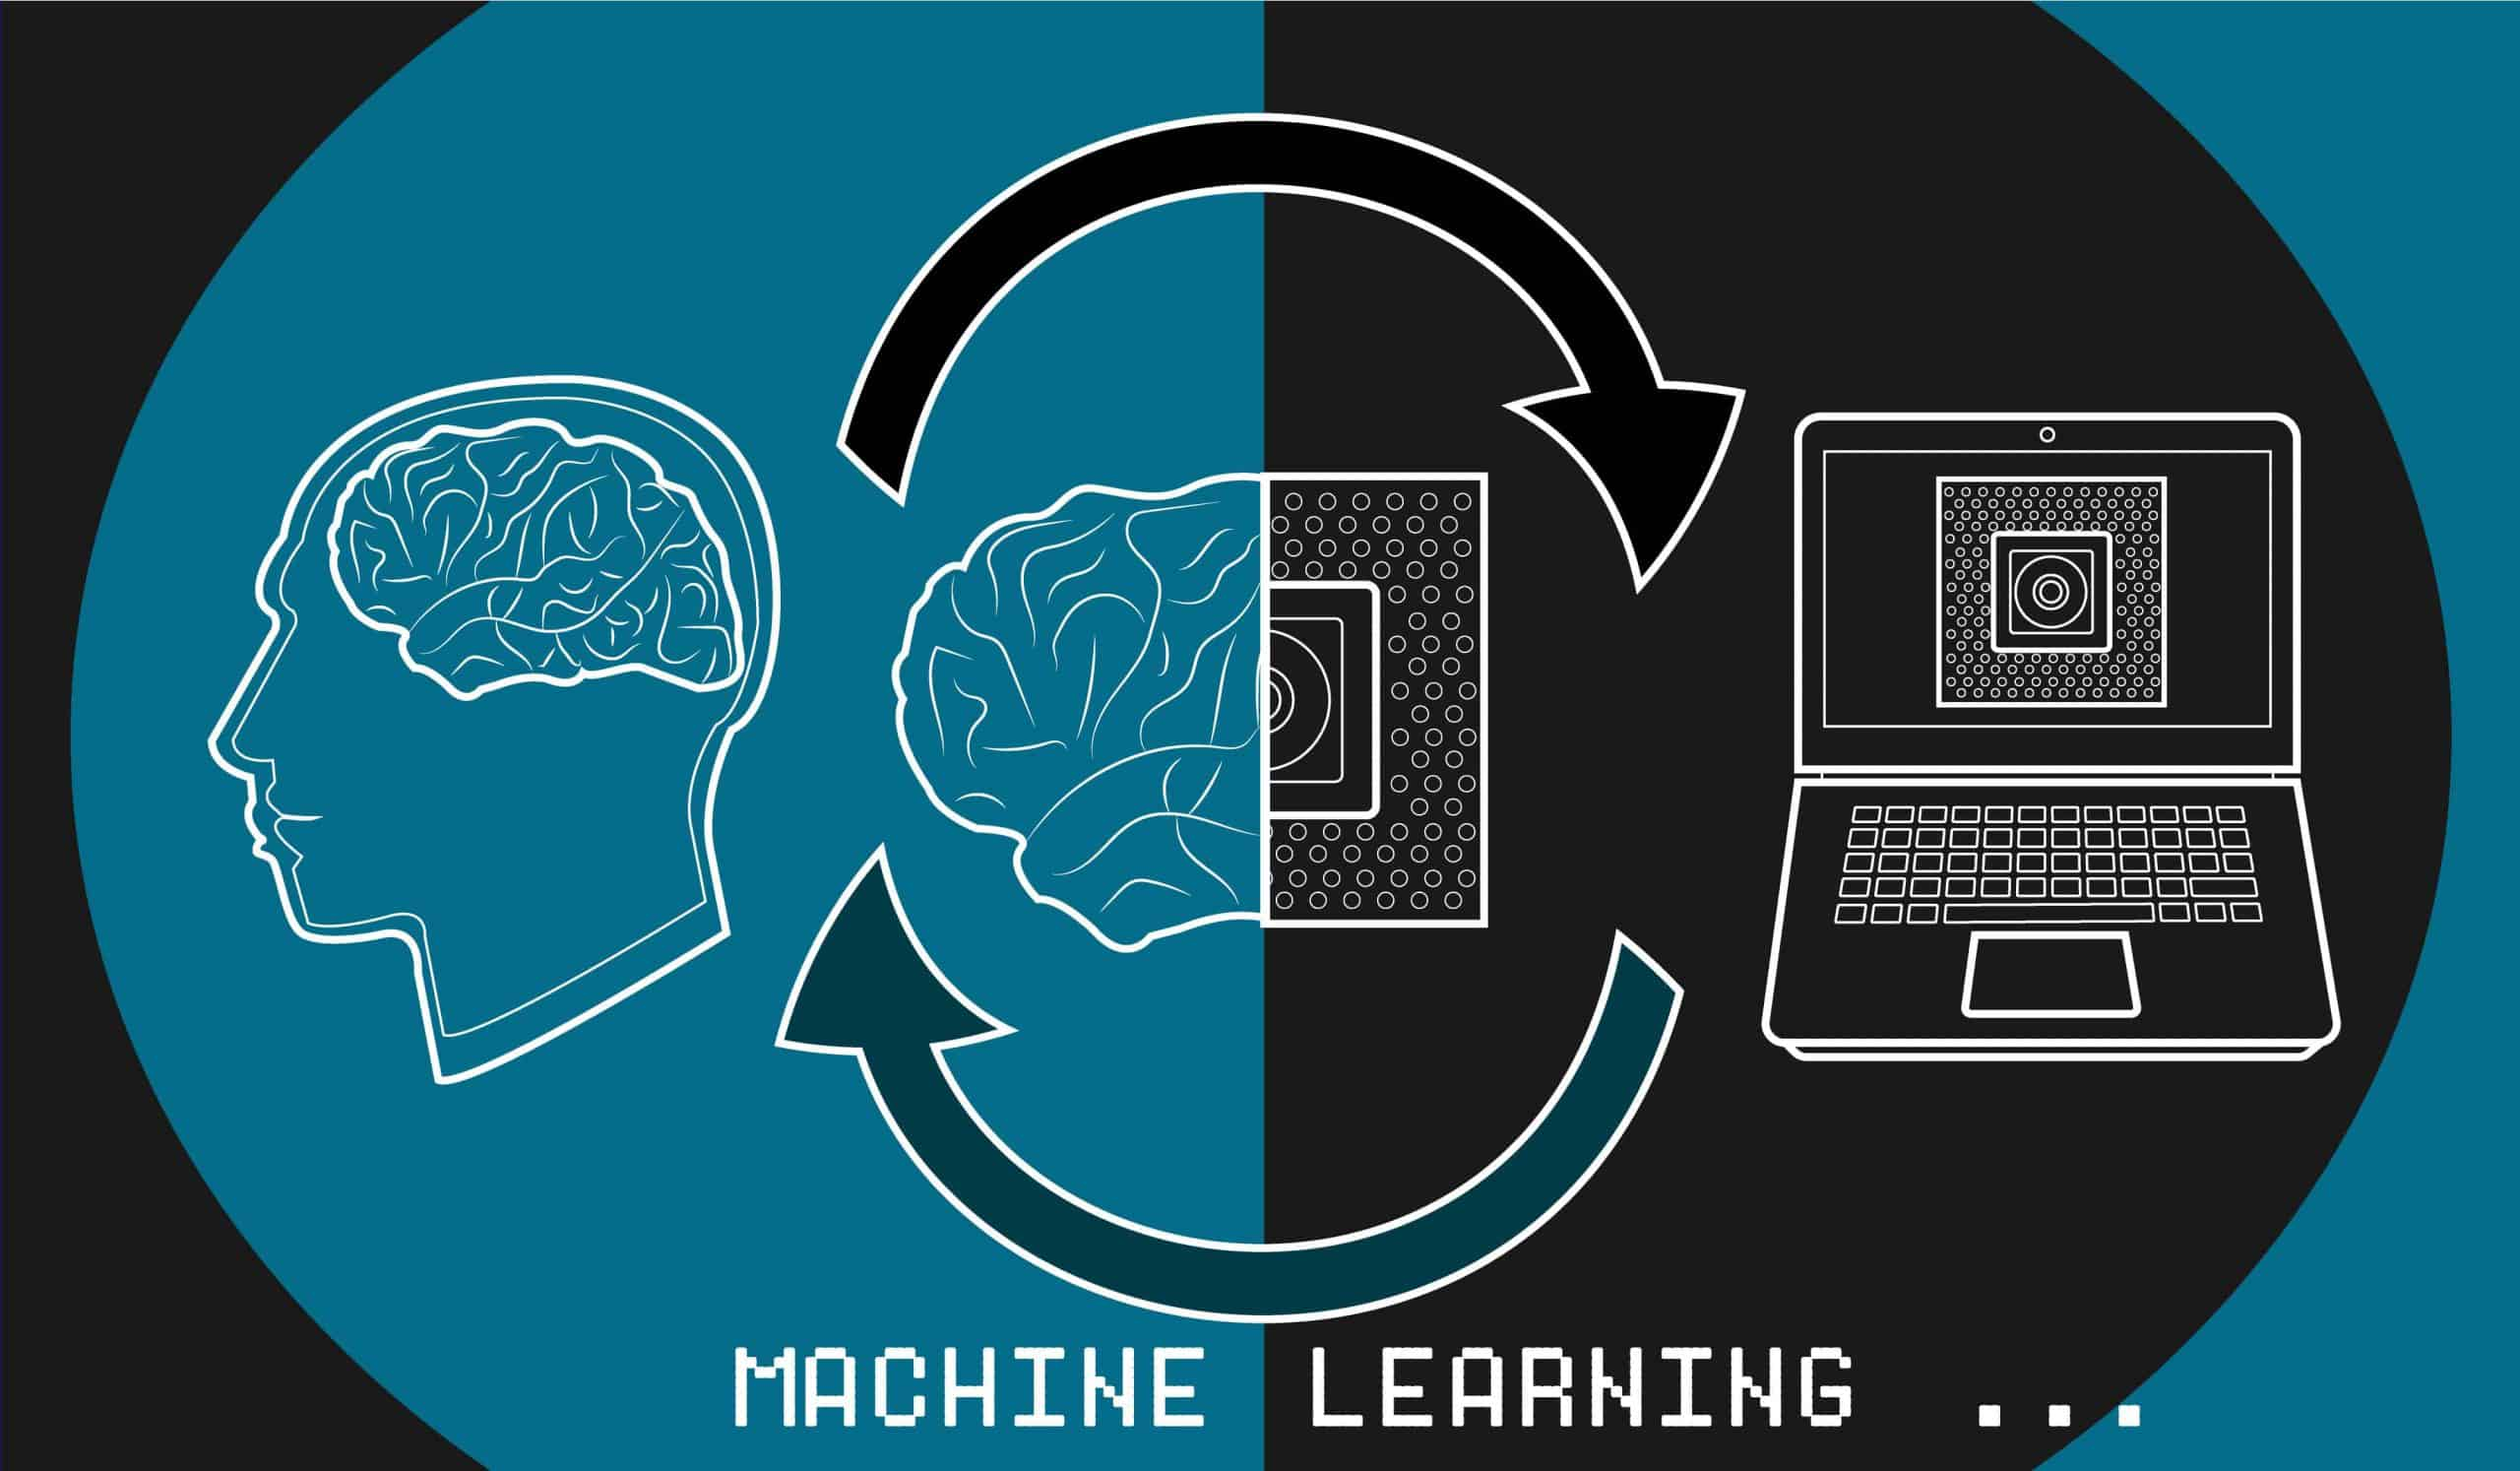 machine learning - Can you apply Machine Learning to Data Cleansing?